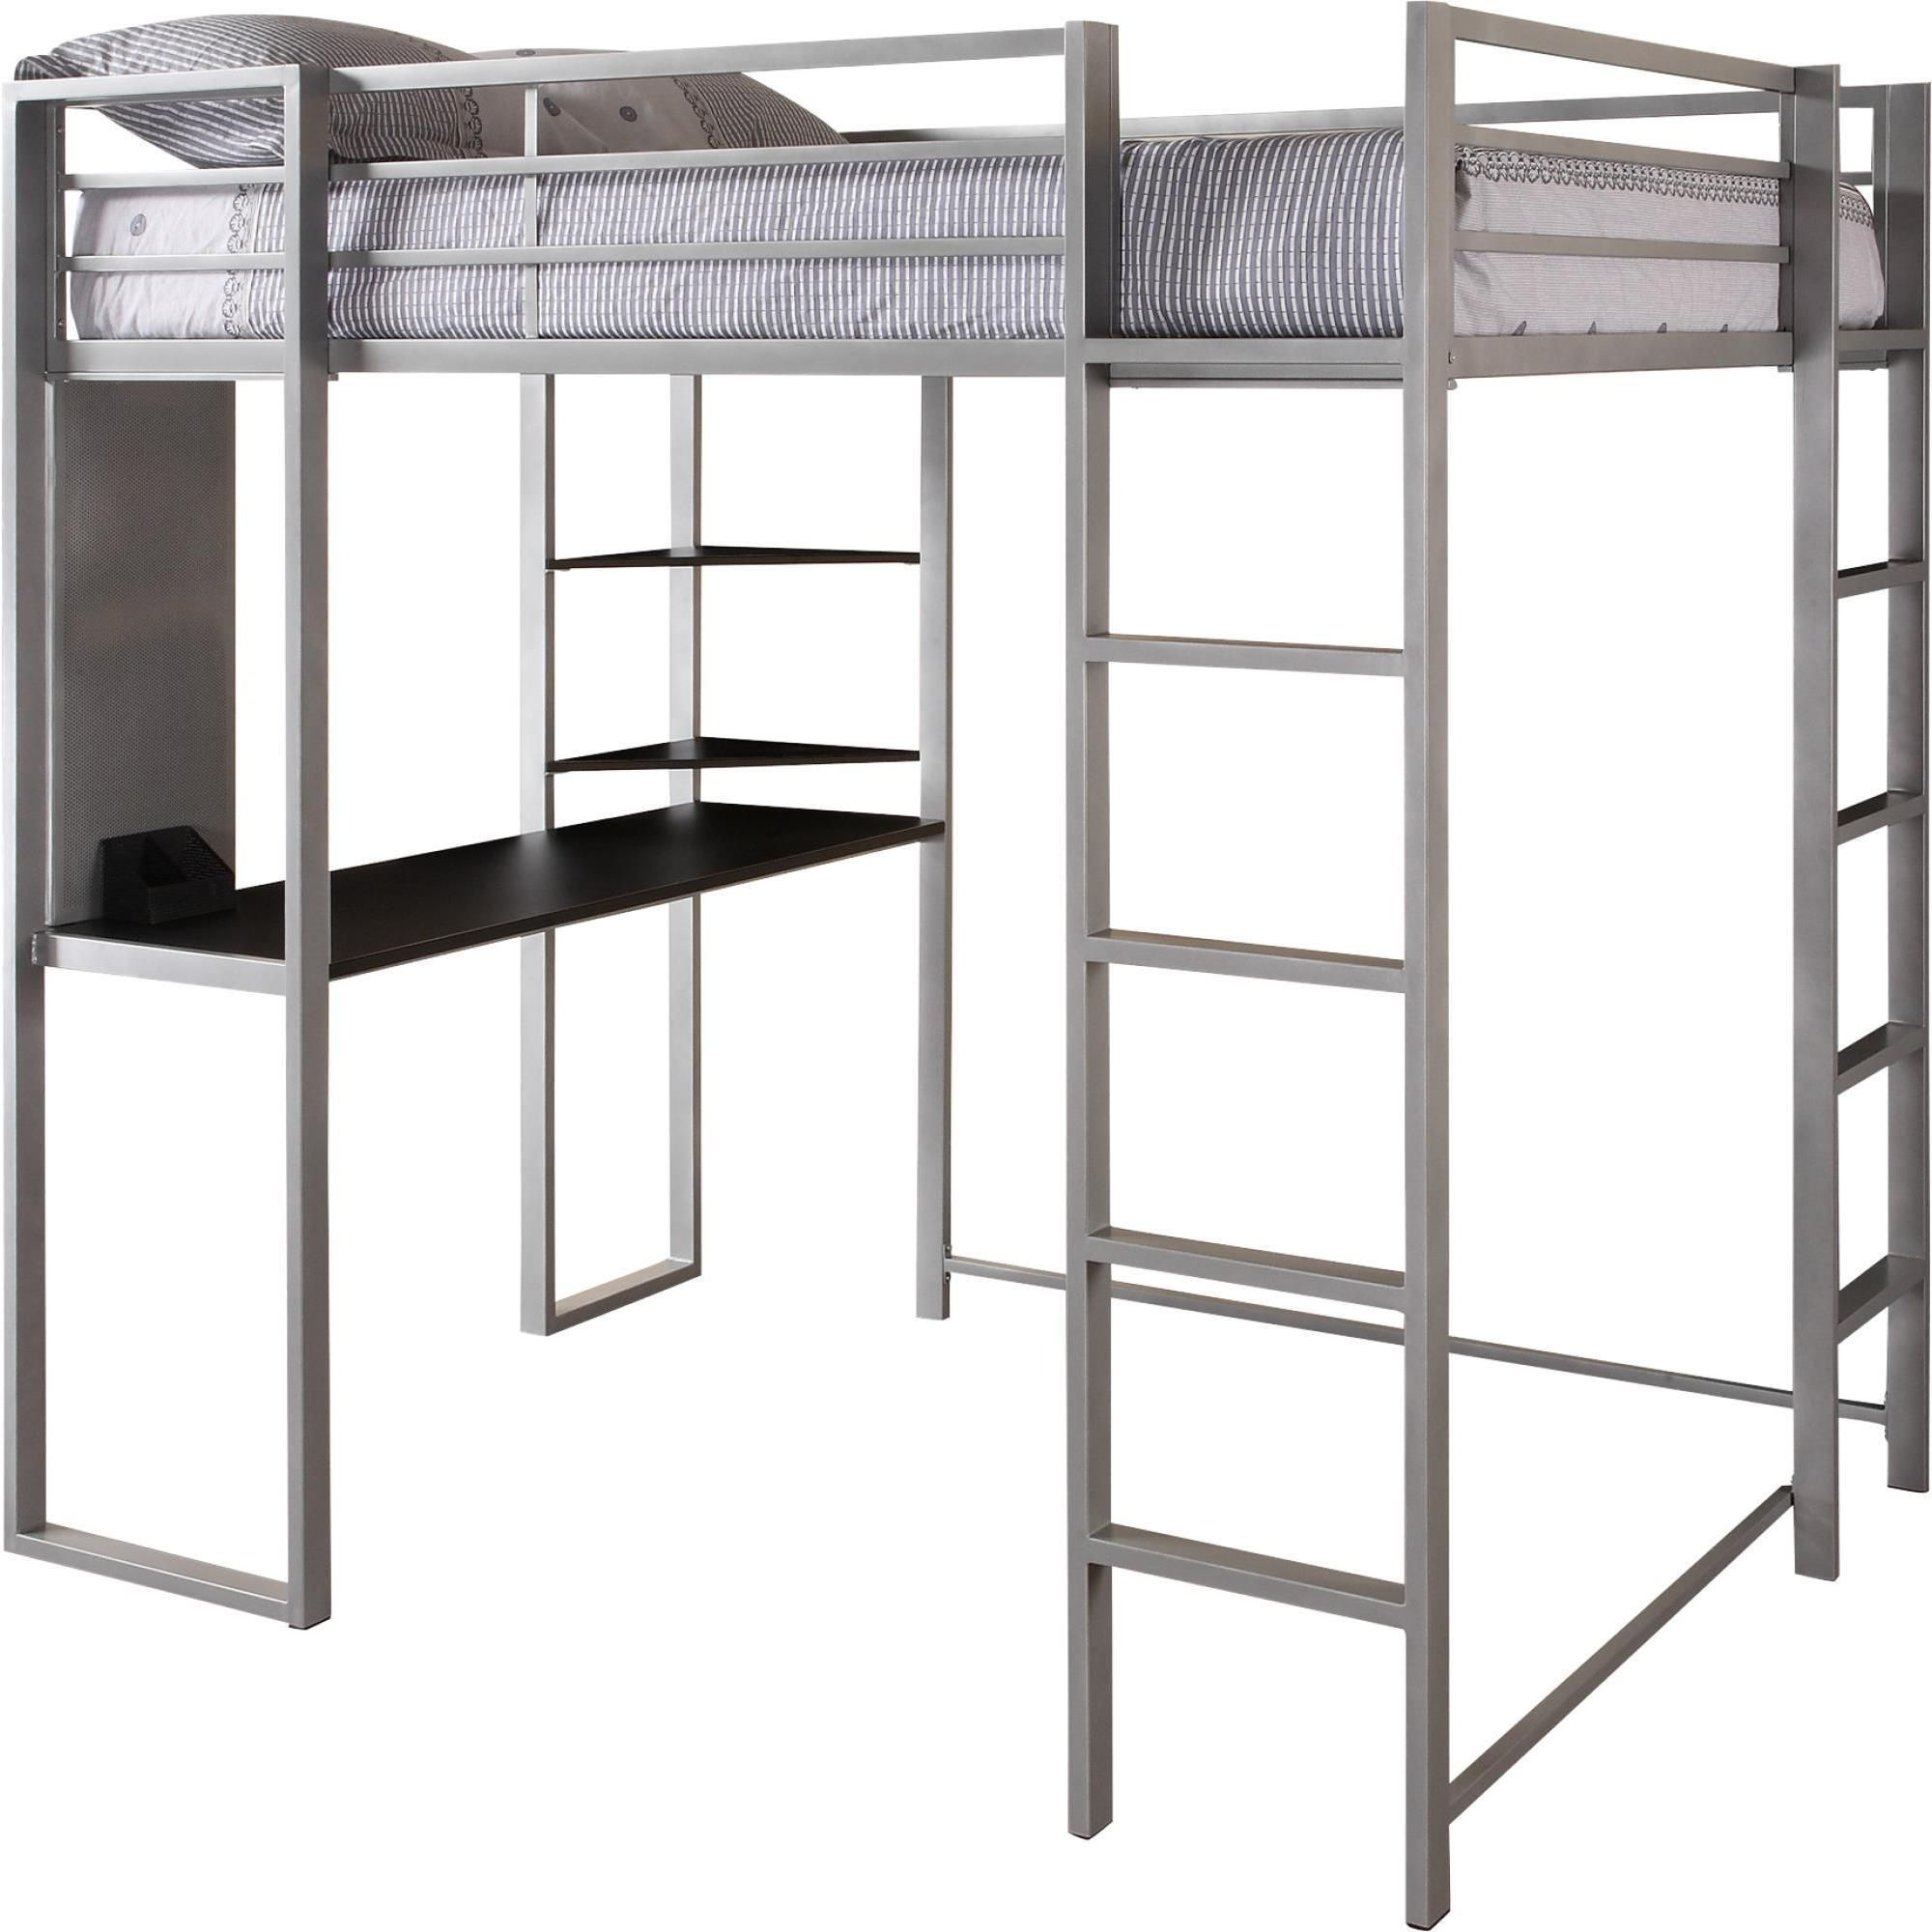 Overstock Com Online Shopping Bedding Furniture Electronics Jewelry Clothing More Loft Bed Diy Loft Bed Bunk Beds With Stairs